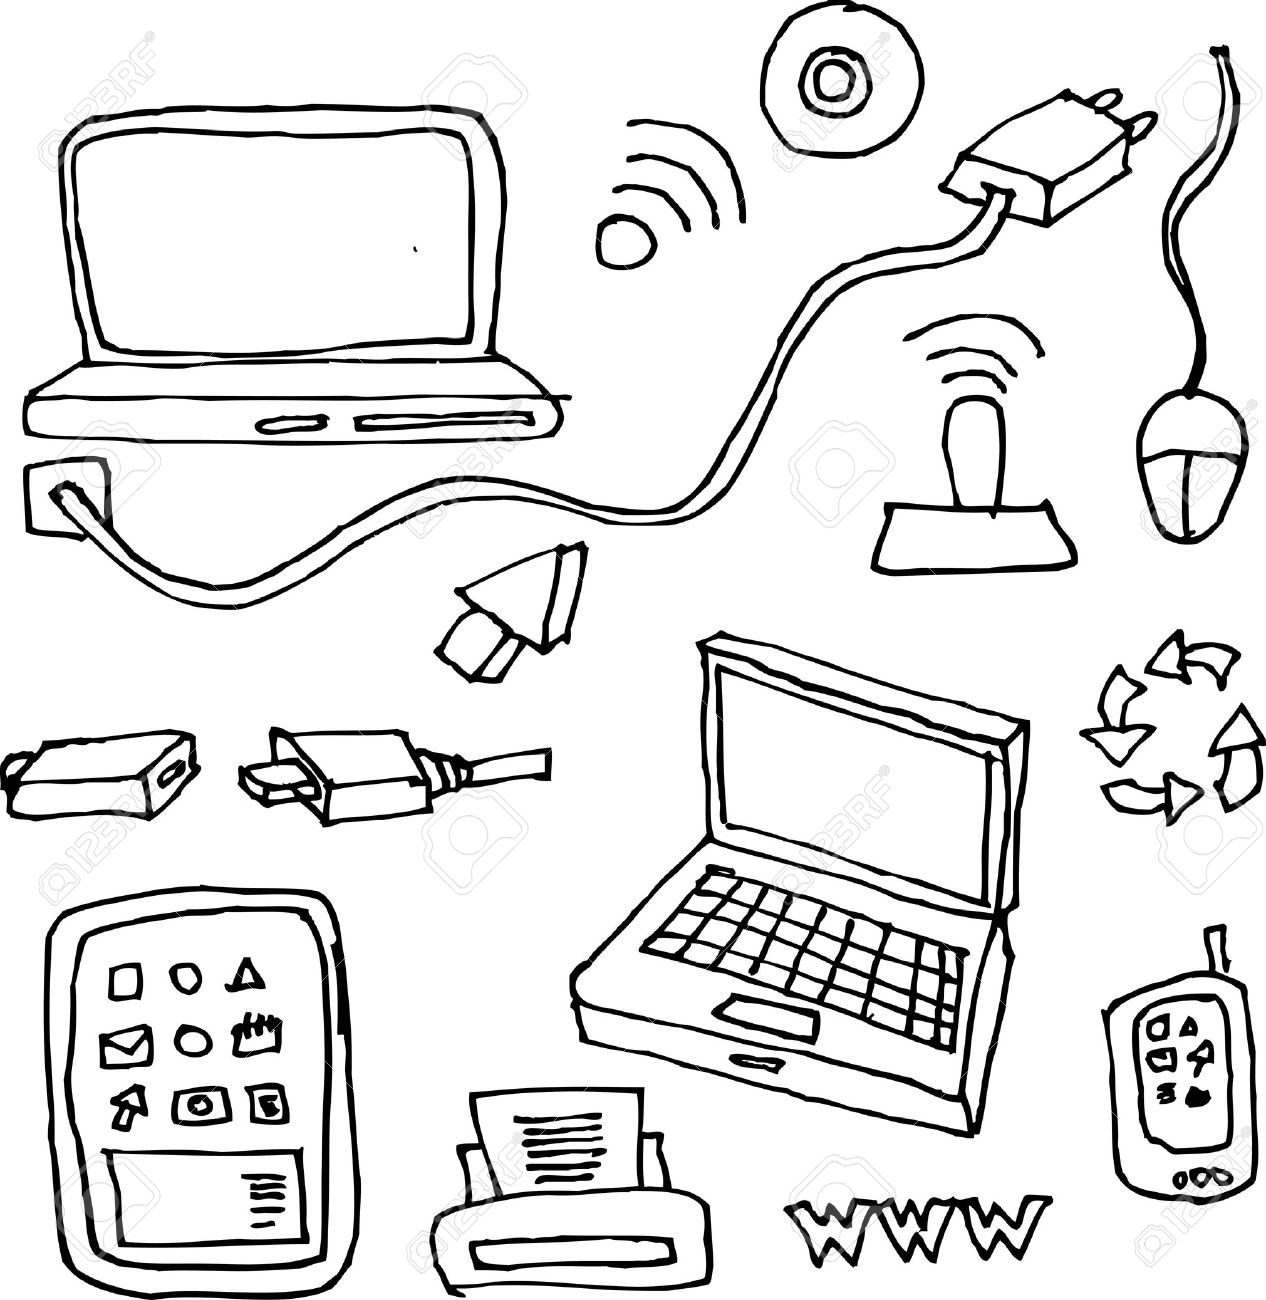 drawing by hand of computers, tablets, printers, cables and network items for technology Stock Vector - 9991723